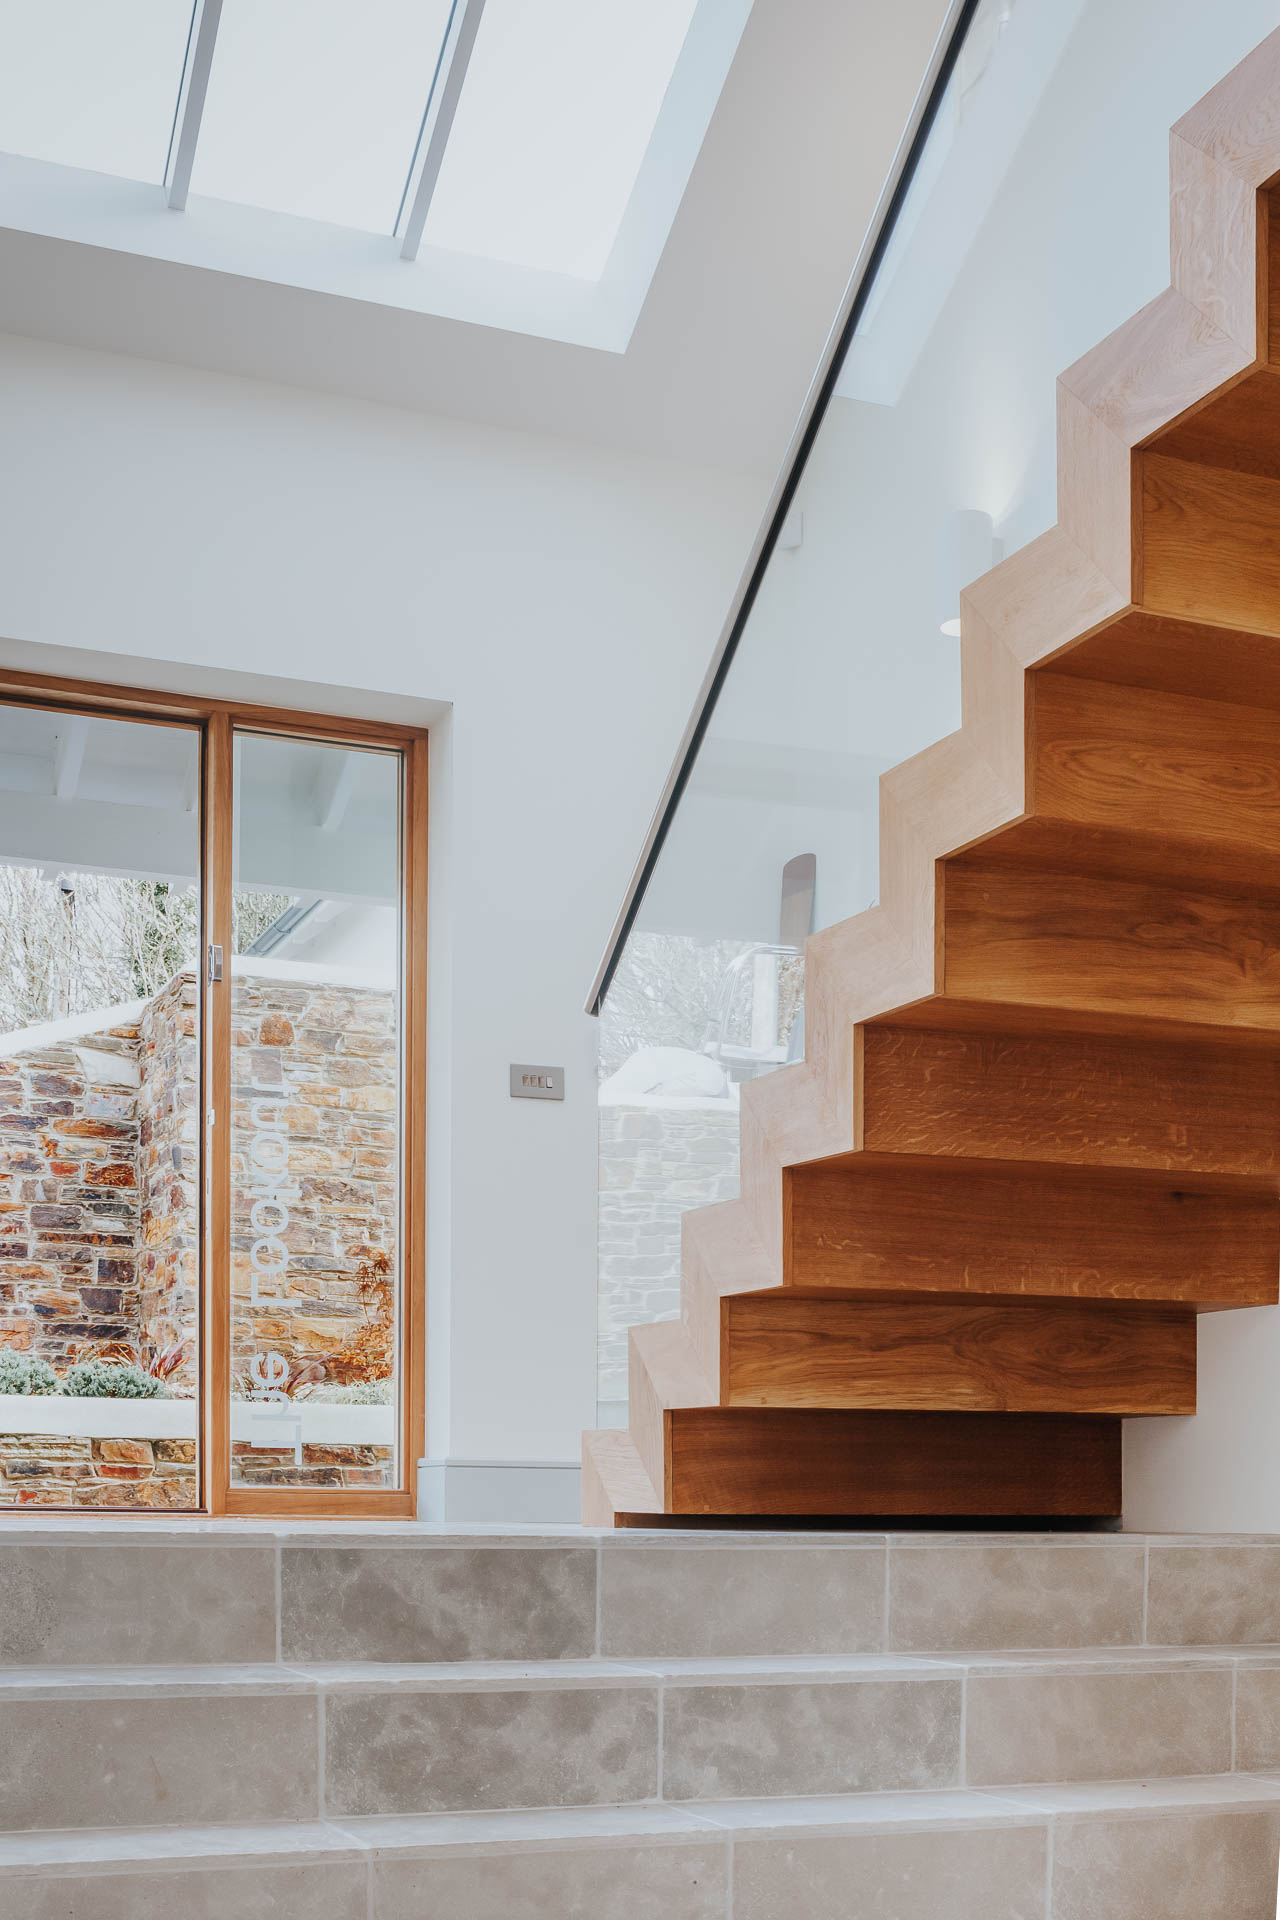 bespoke folded timber staircase by architects in salcombe andrew lethbridge associates